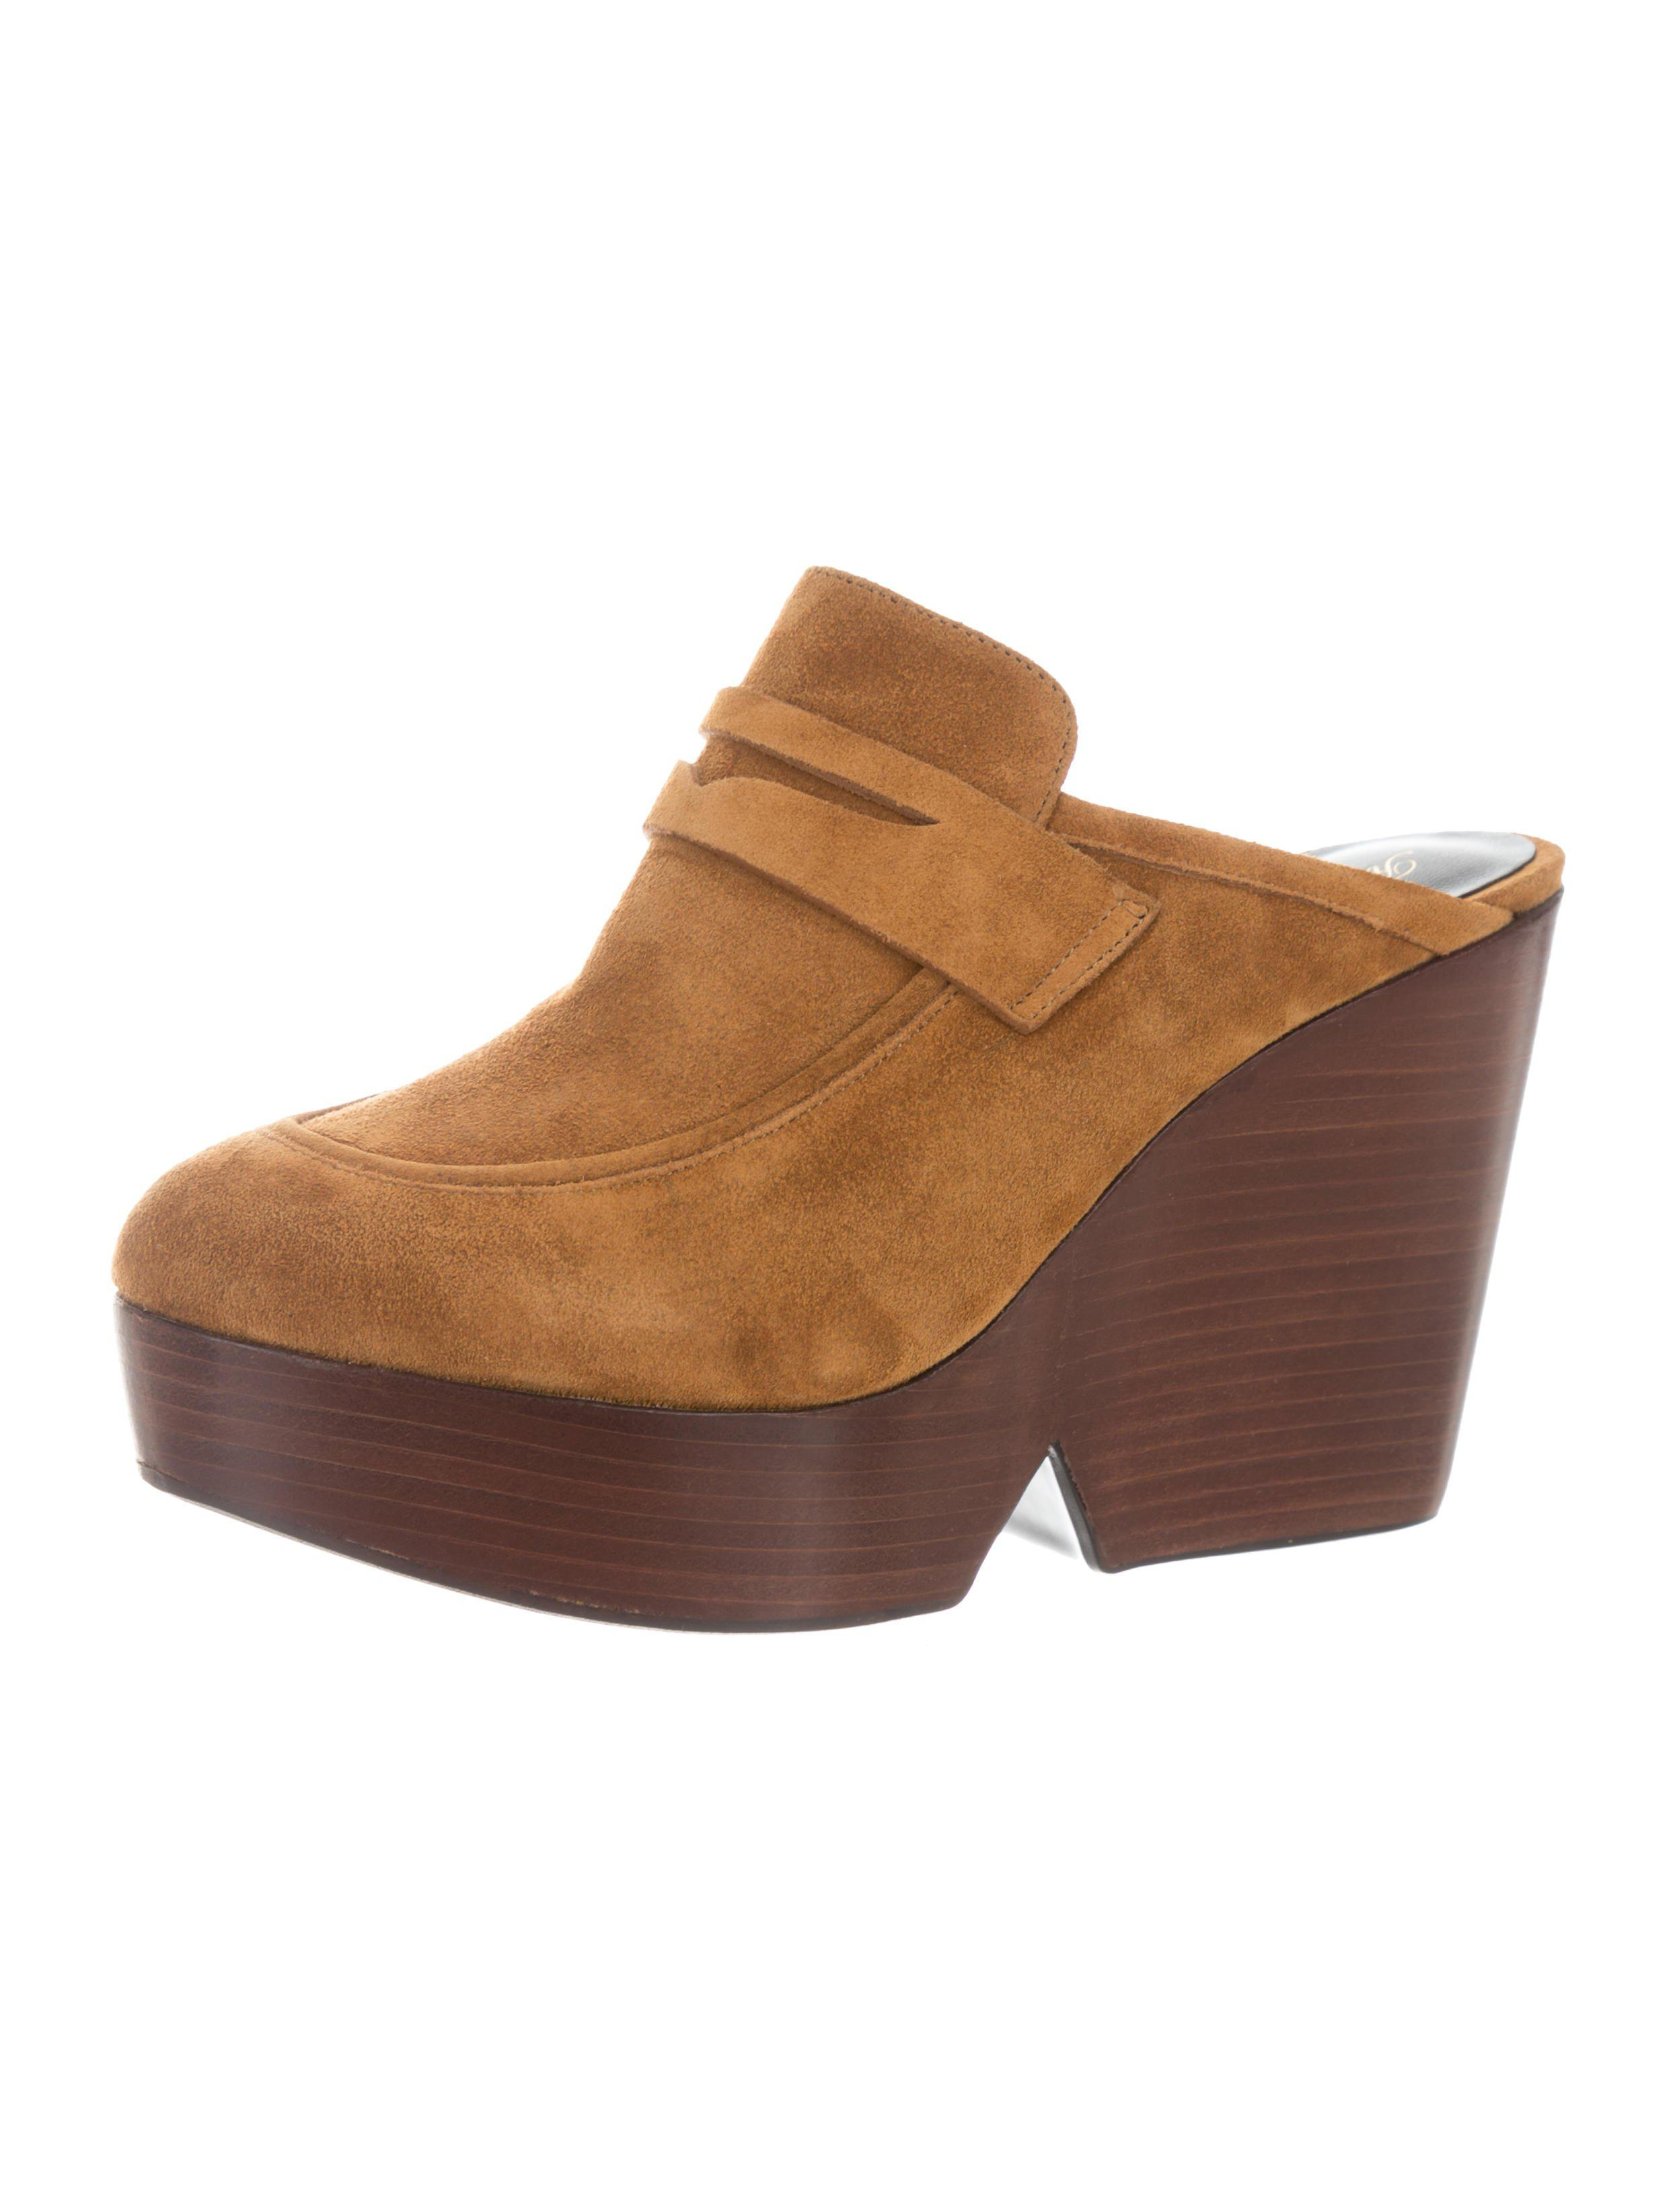 Robert Clergerie Damor Suede Mules w/ Tags buy cheap latest wholesale online purchase cheap online cheap low shipping fee qymtQJFE